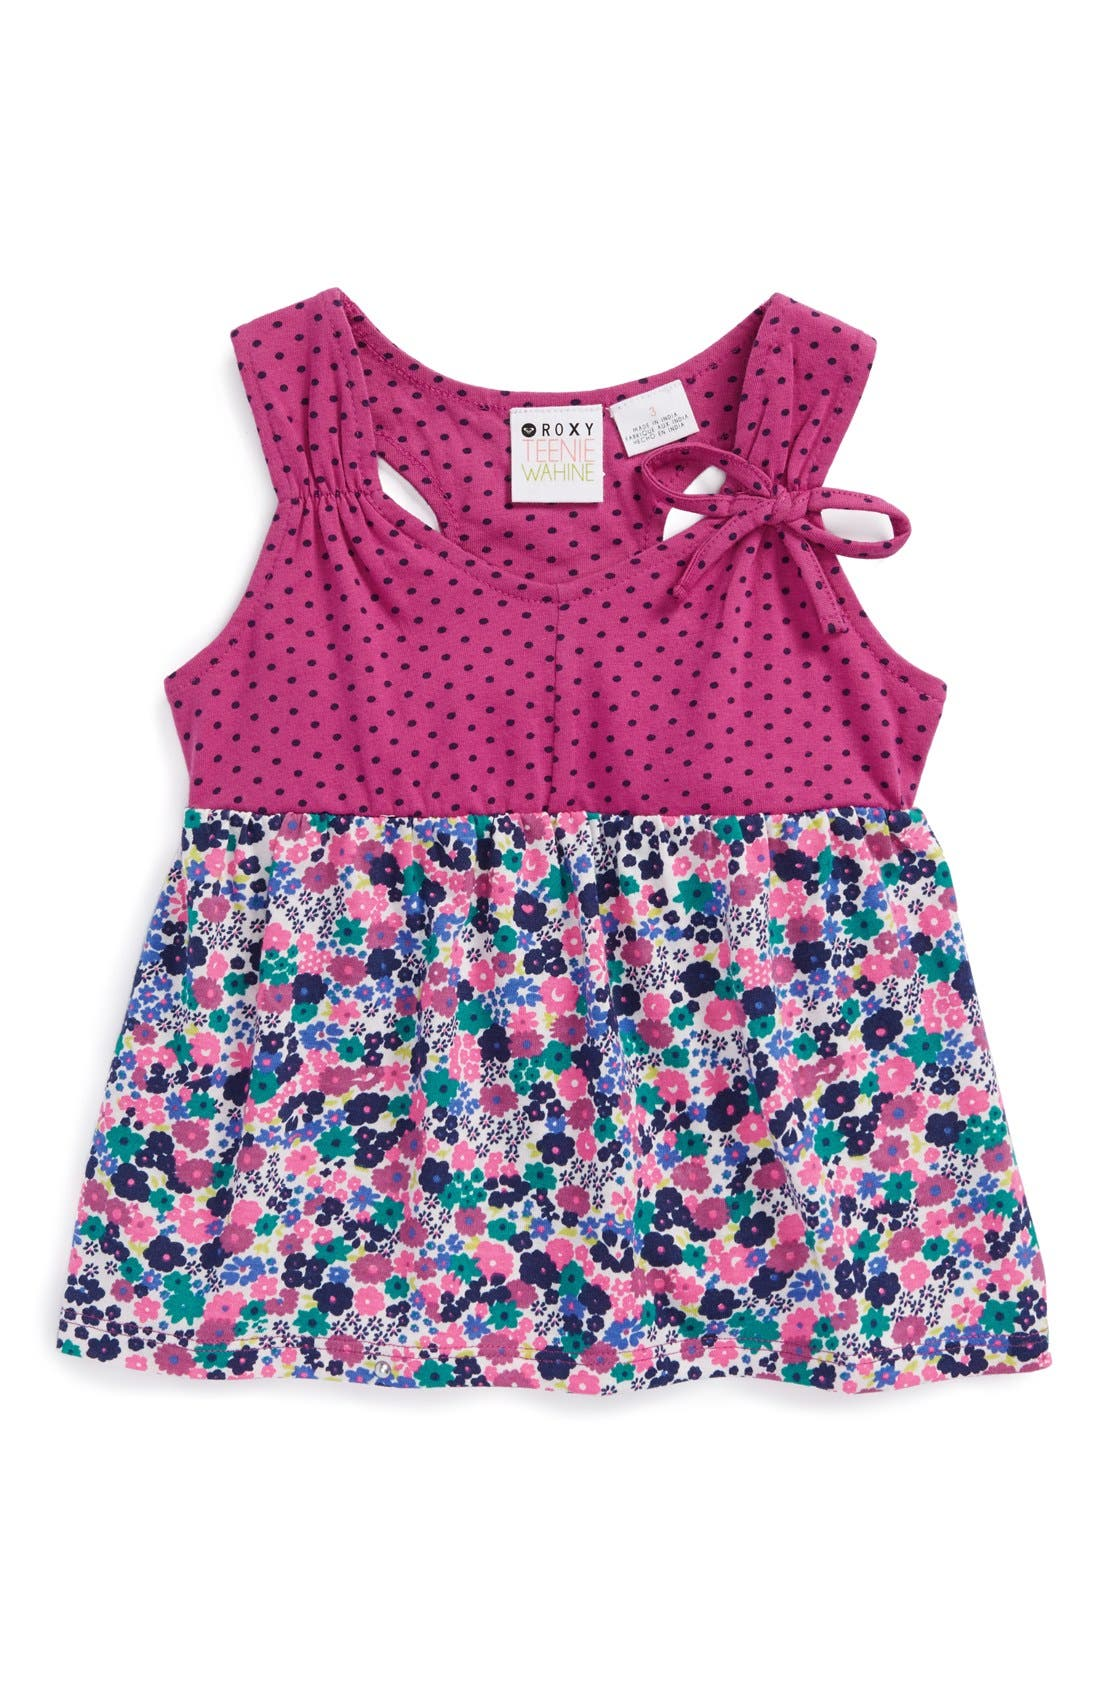 Main Image - Roxy 'Turn Around' Sleeveless Top (Toddler Girls)